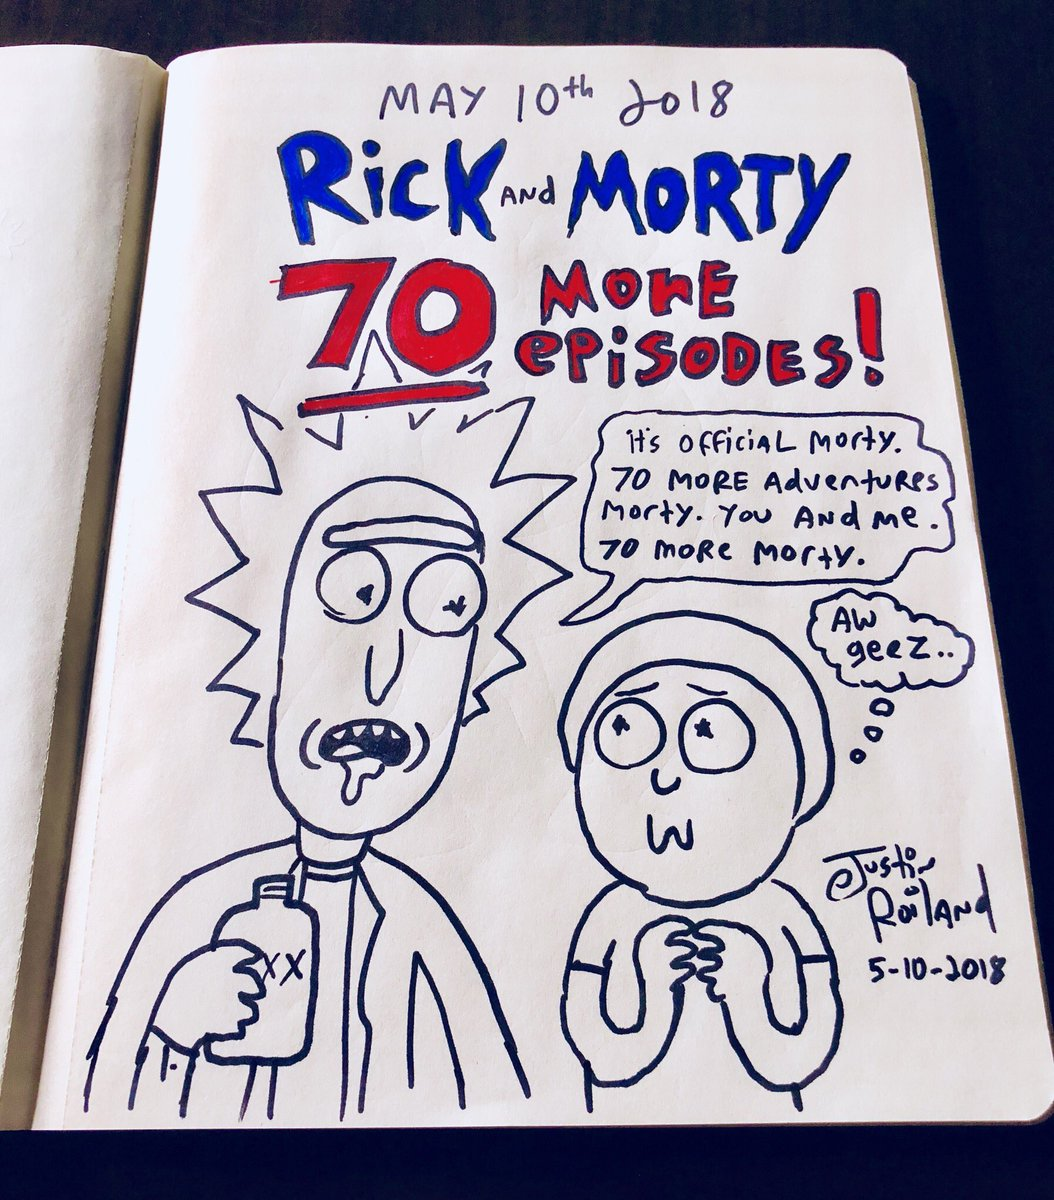 RT @JustinRoiland: More Rick and Morty coming. Looking forward to all the tweets asking where it is! #theydrawingit https://t.co/KZild3B9rP